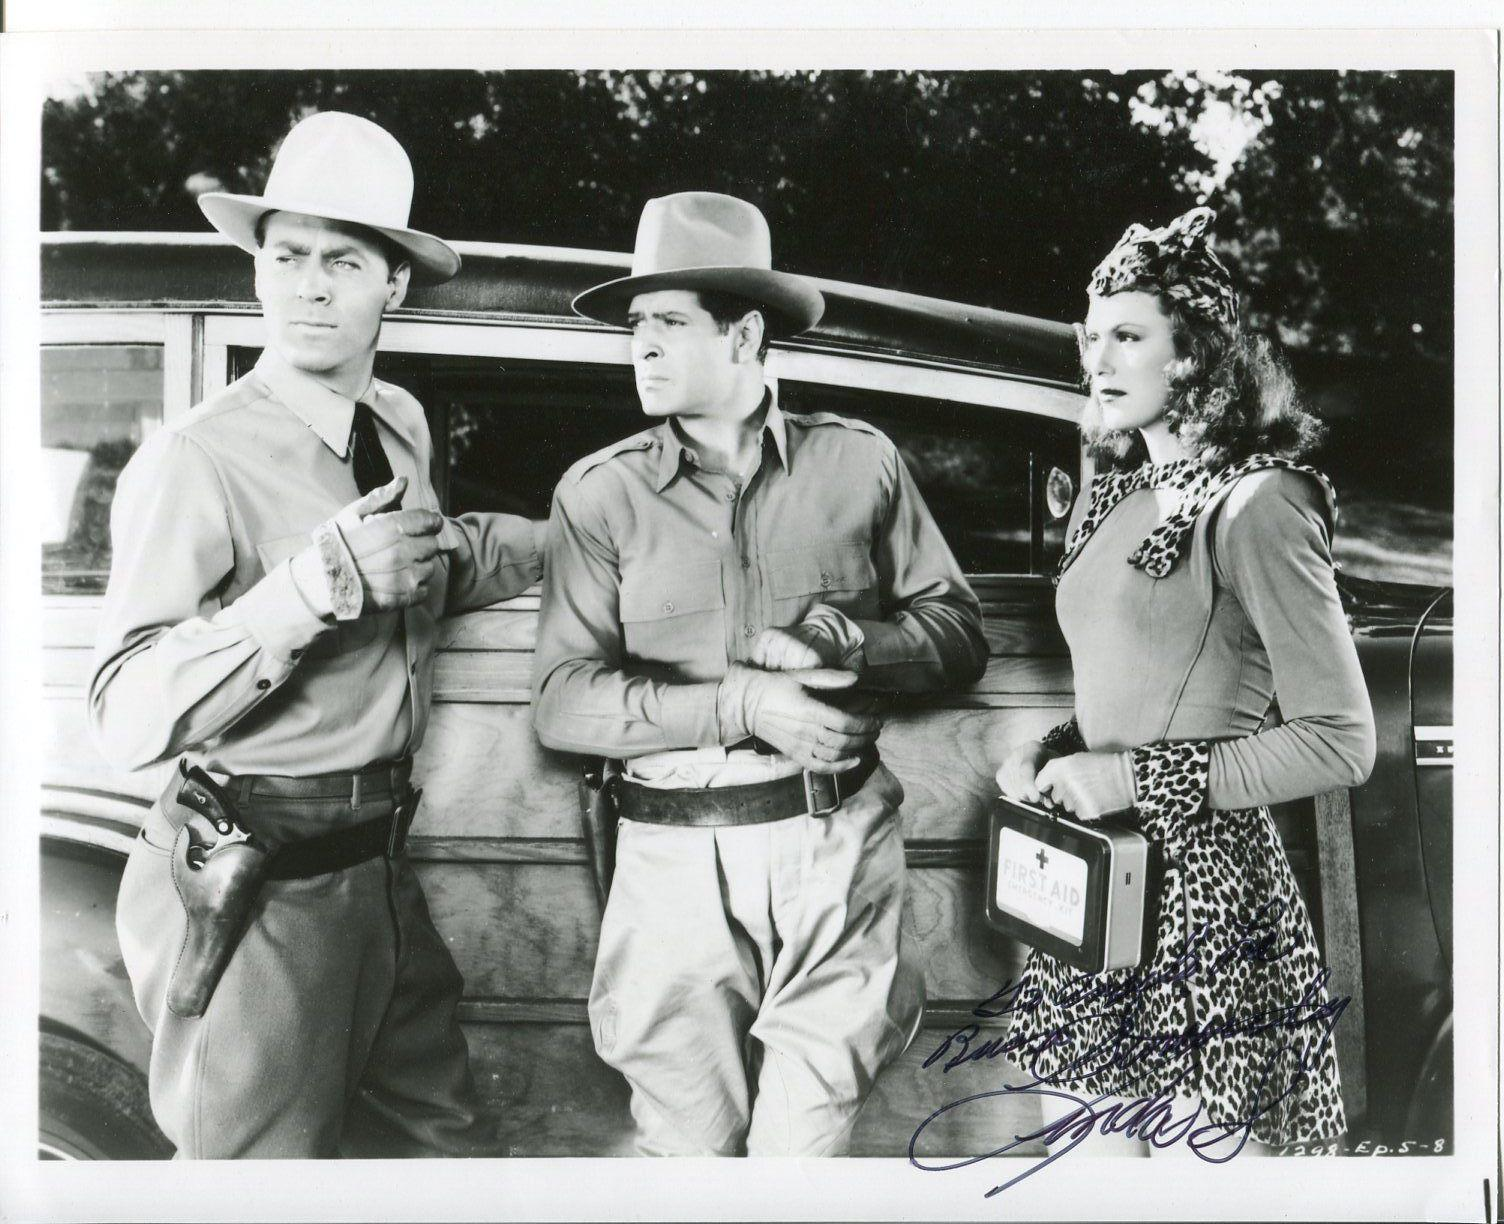 Linda Stirling Zorro's Black Whip Cowboy Western Movies Signed Autograph Photo